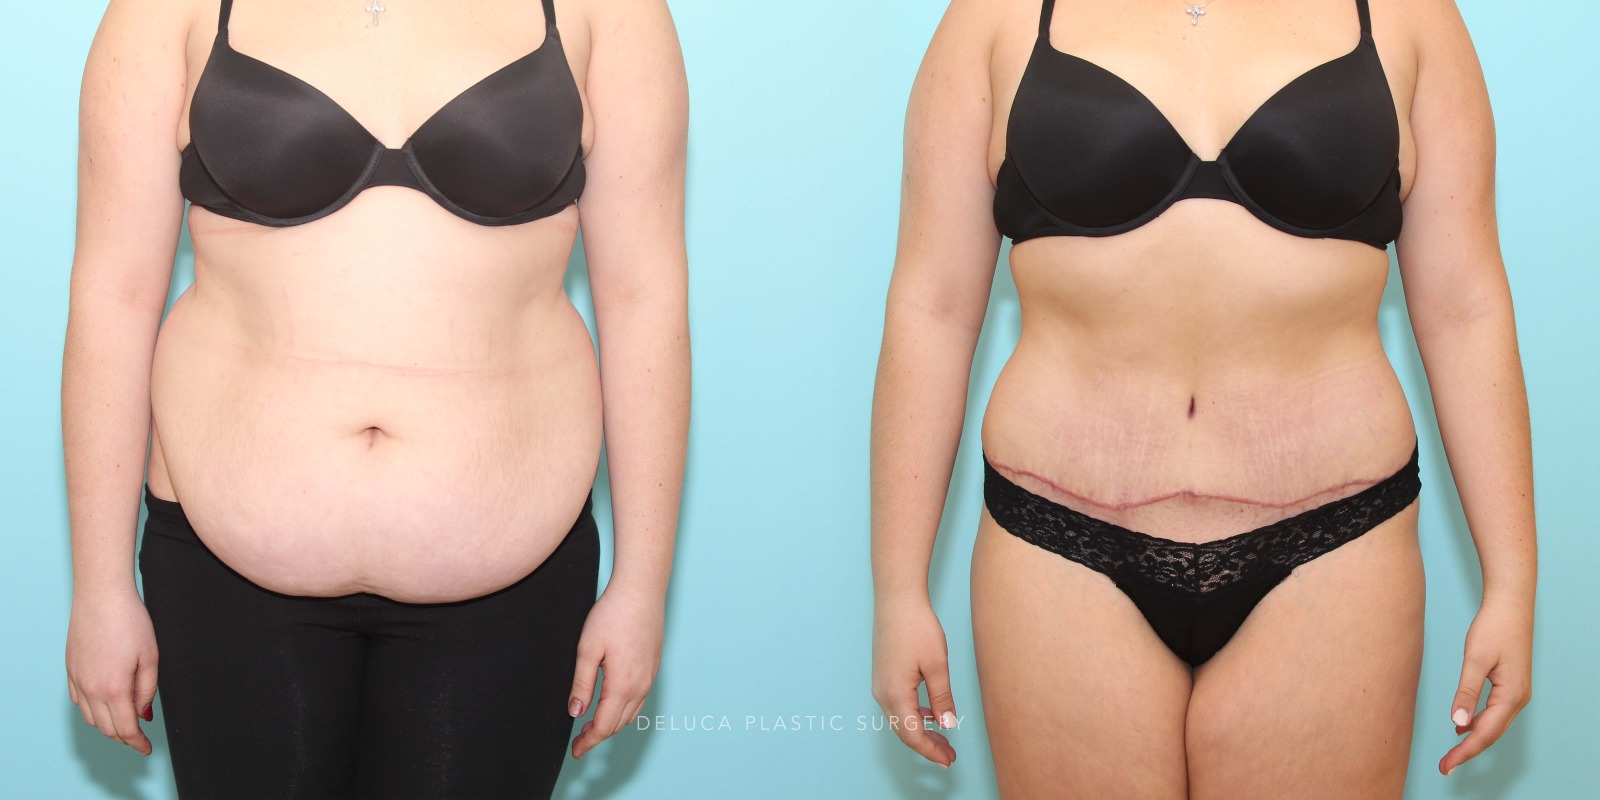 21 year old Tummy Tuck (Abdominoplasty)